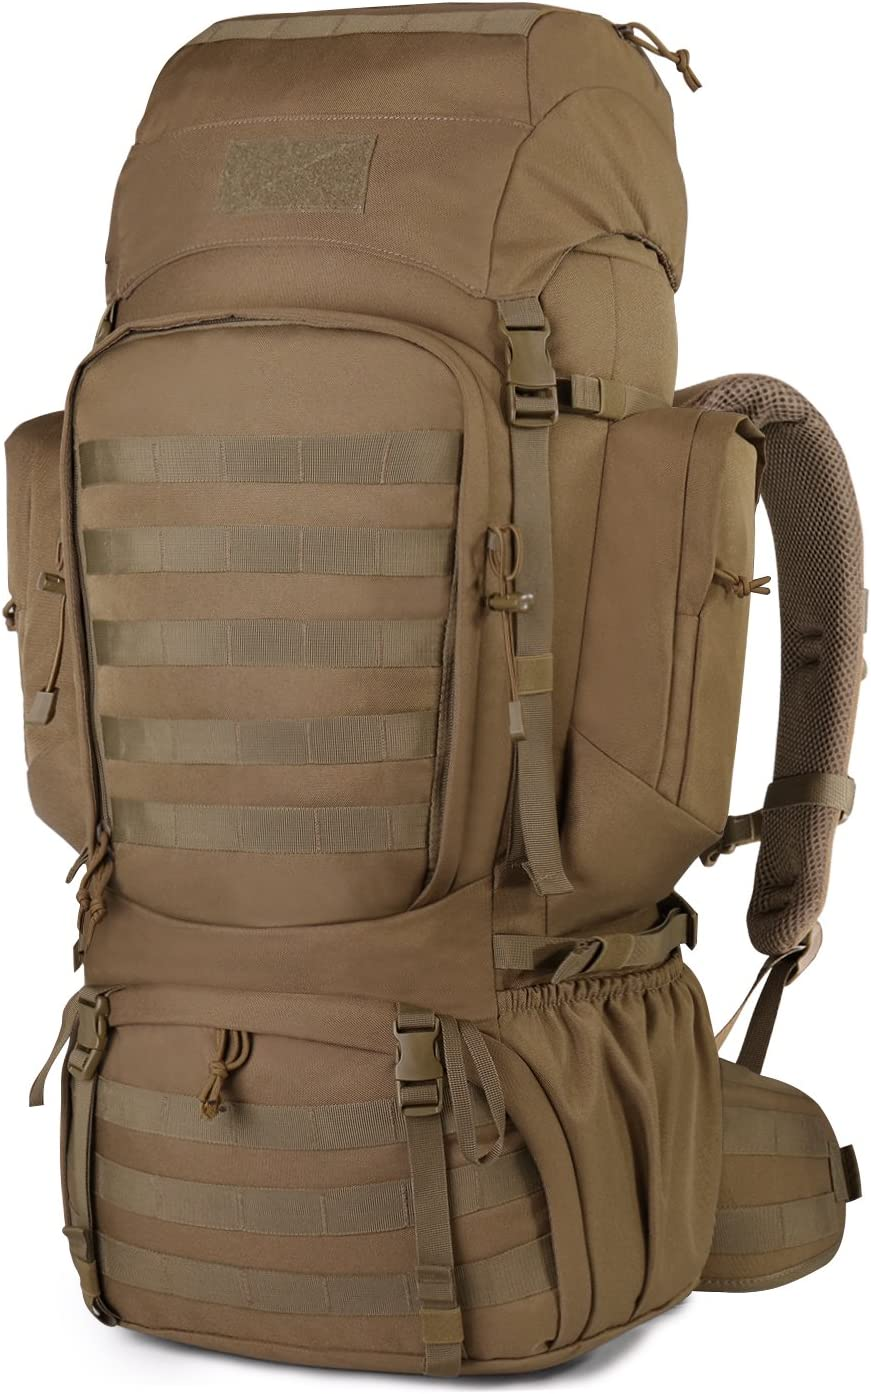 Mardingtop 50L 60L 75L Molle Hiking Internal Frame Backpacks with Rain Cover